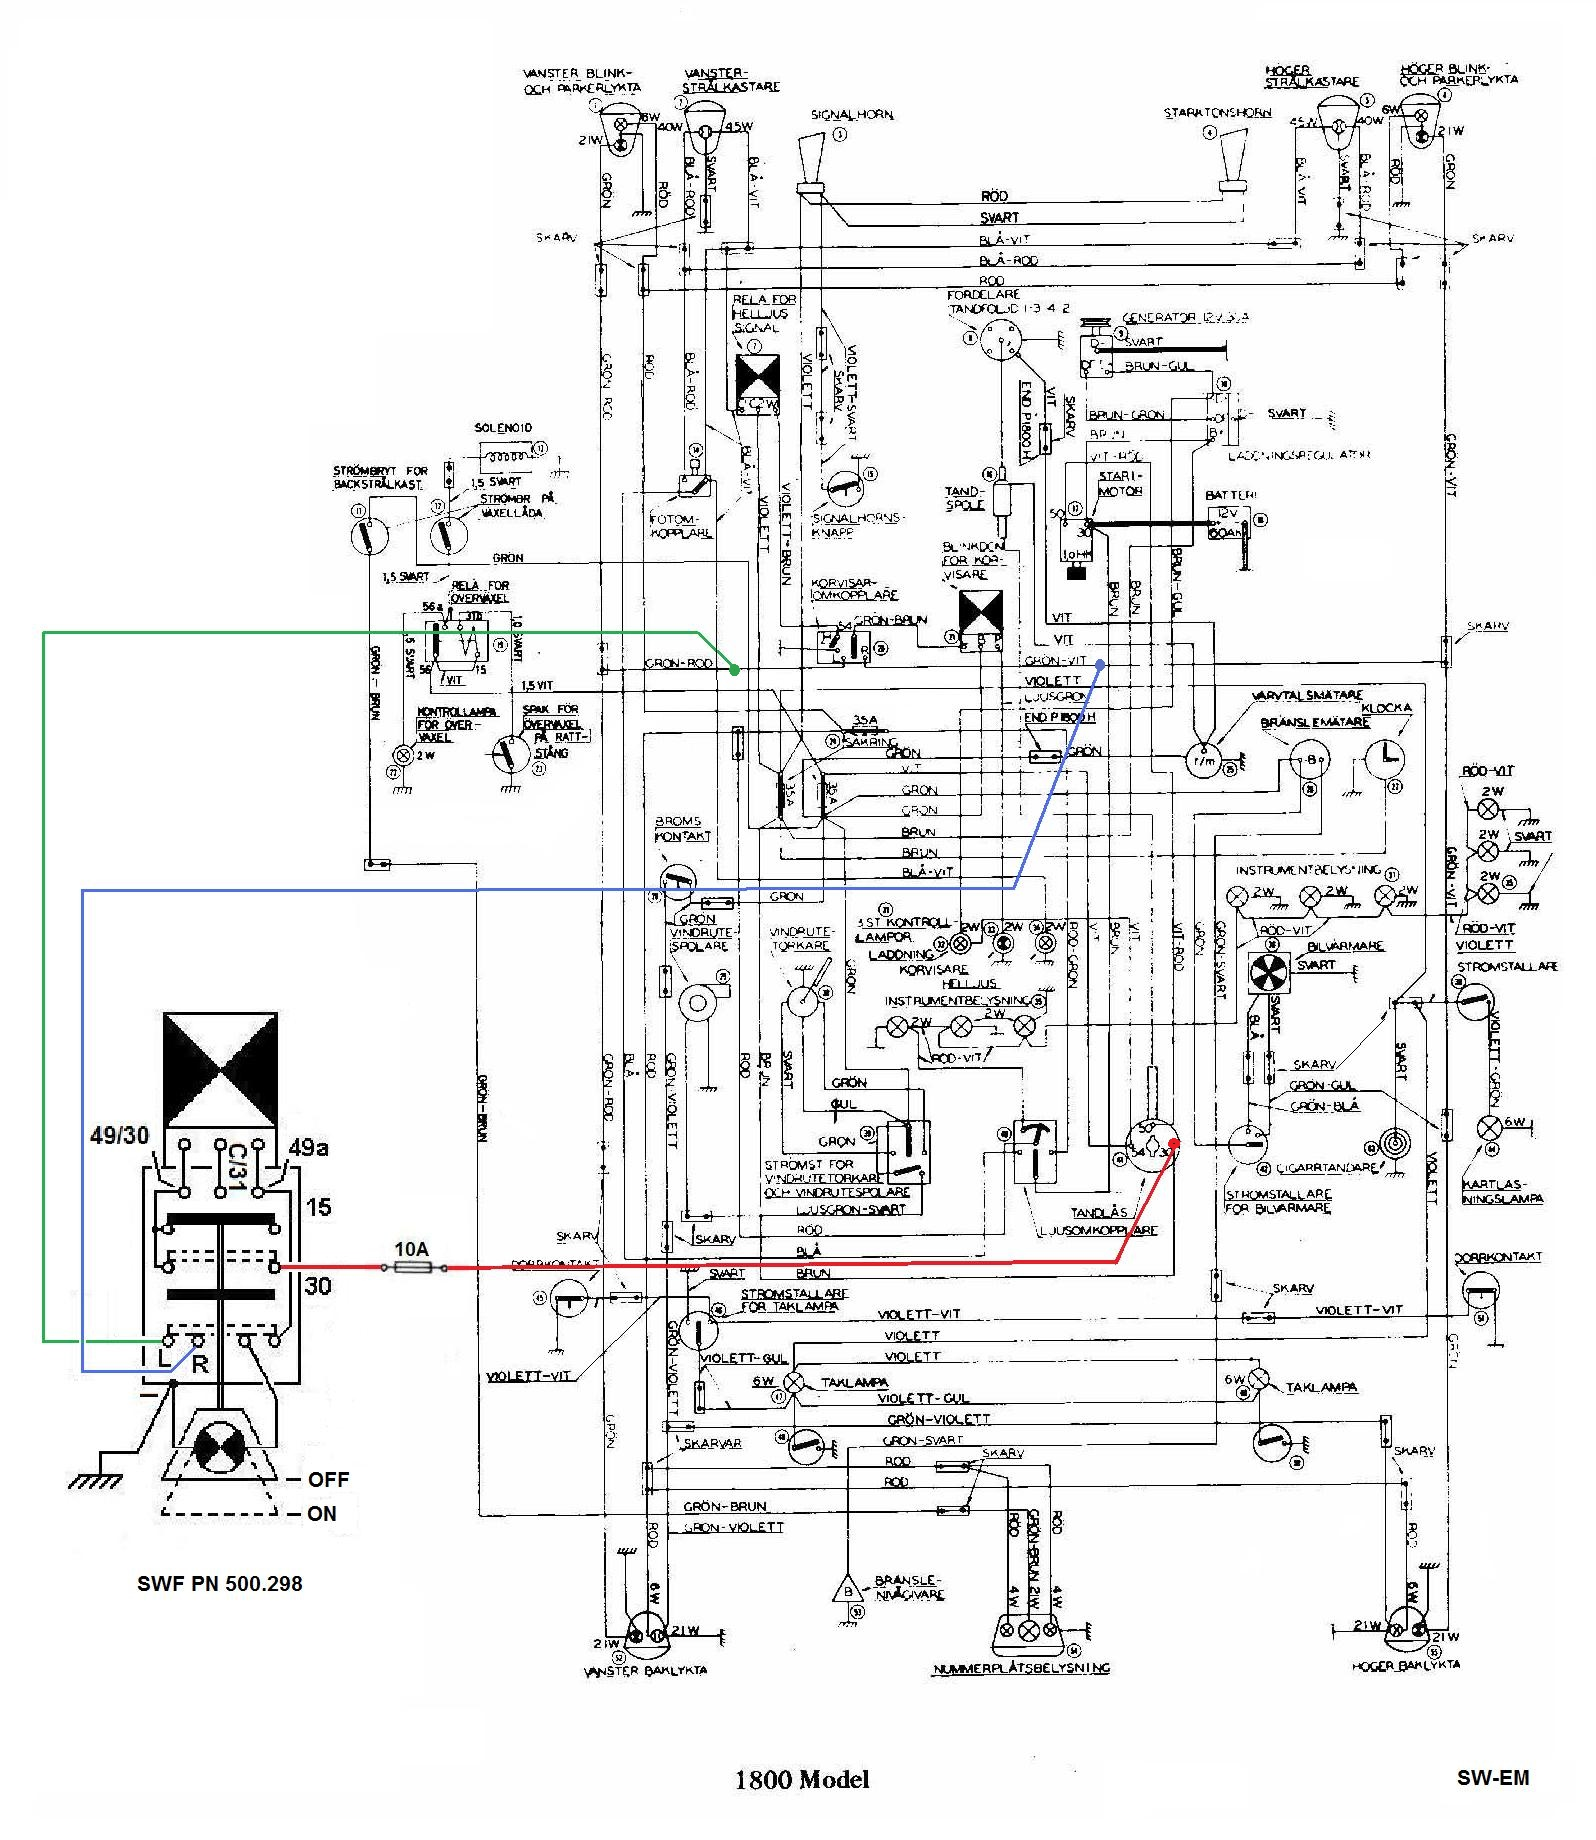 Sw Em Emergency Flasher 2000 Volvo V70 Ignition Cylinder Wiring Diagram Notes On Circuit Function As The Switch Has Its Own Blinker Element All It Needs Is Battery Power From Terminal 30 And